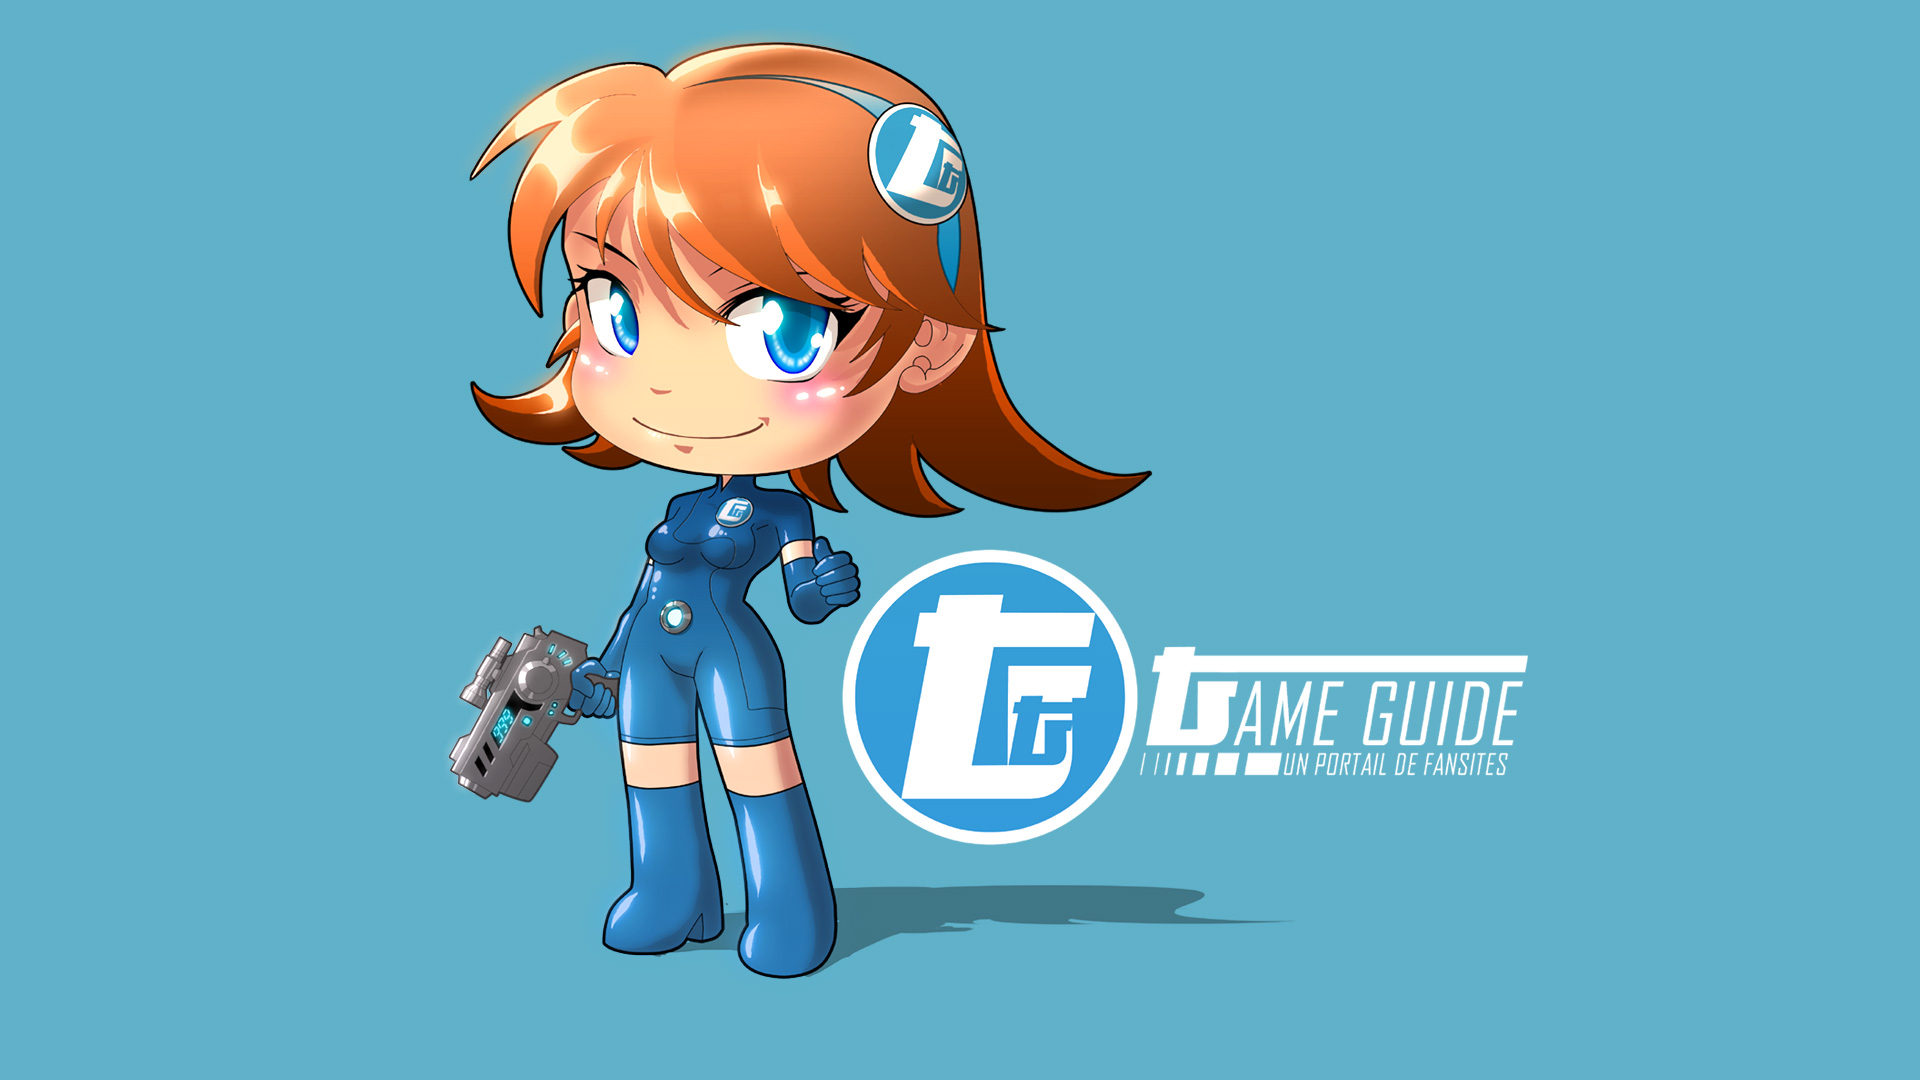 Game girl by neitsabes